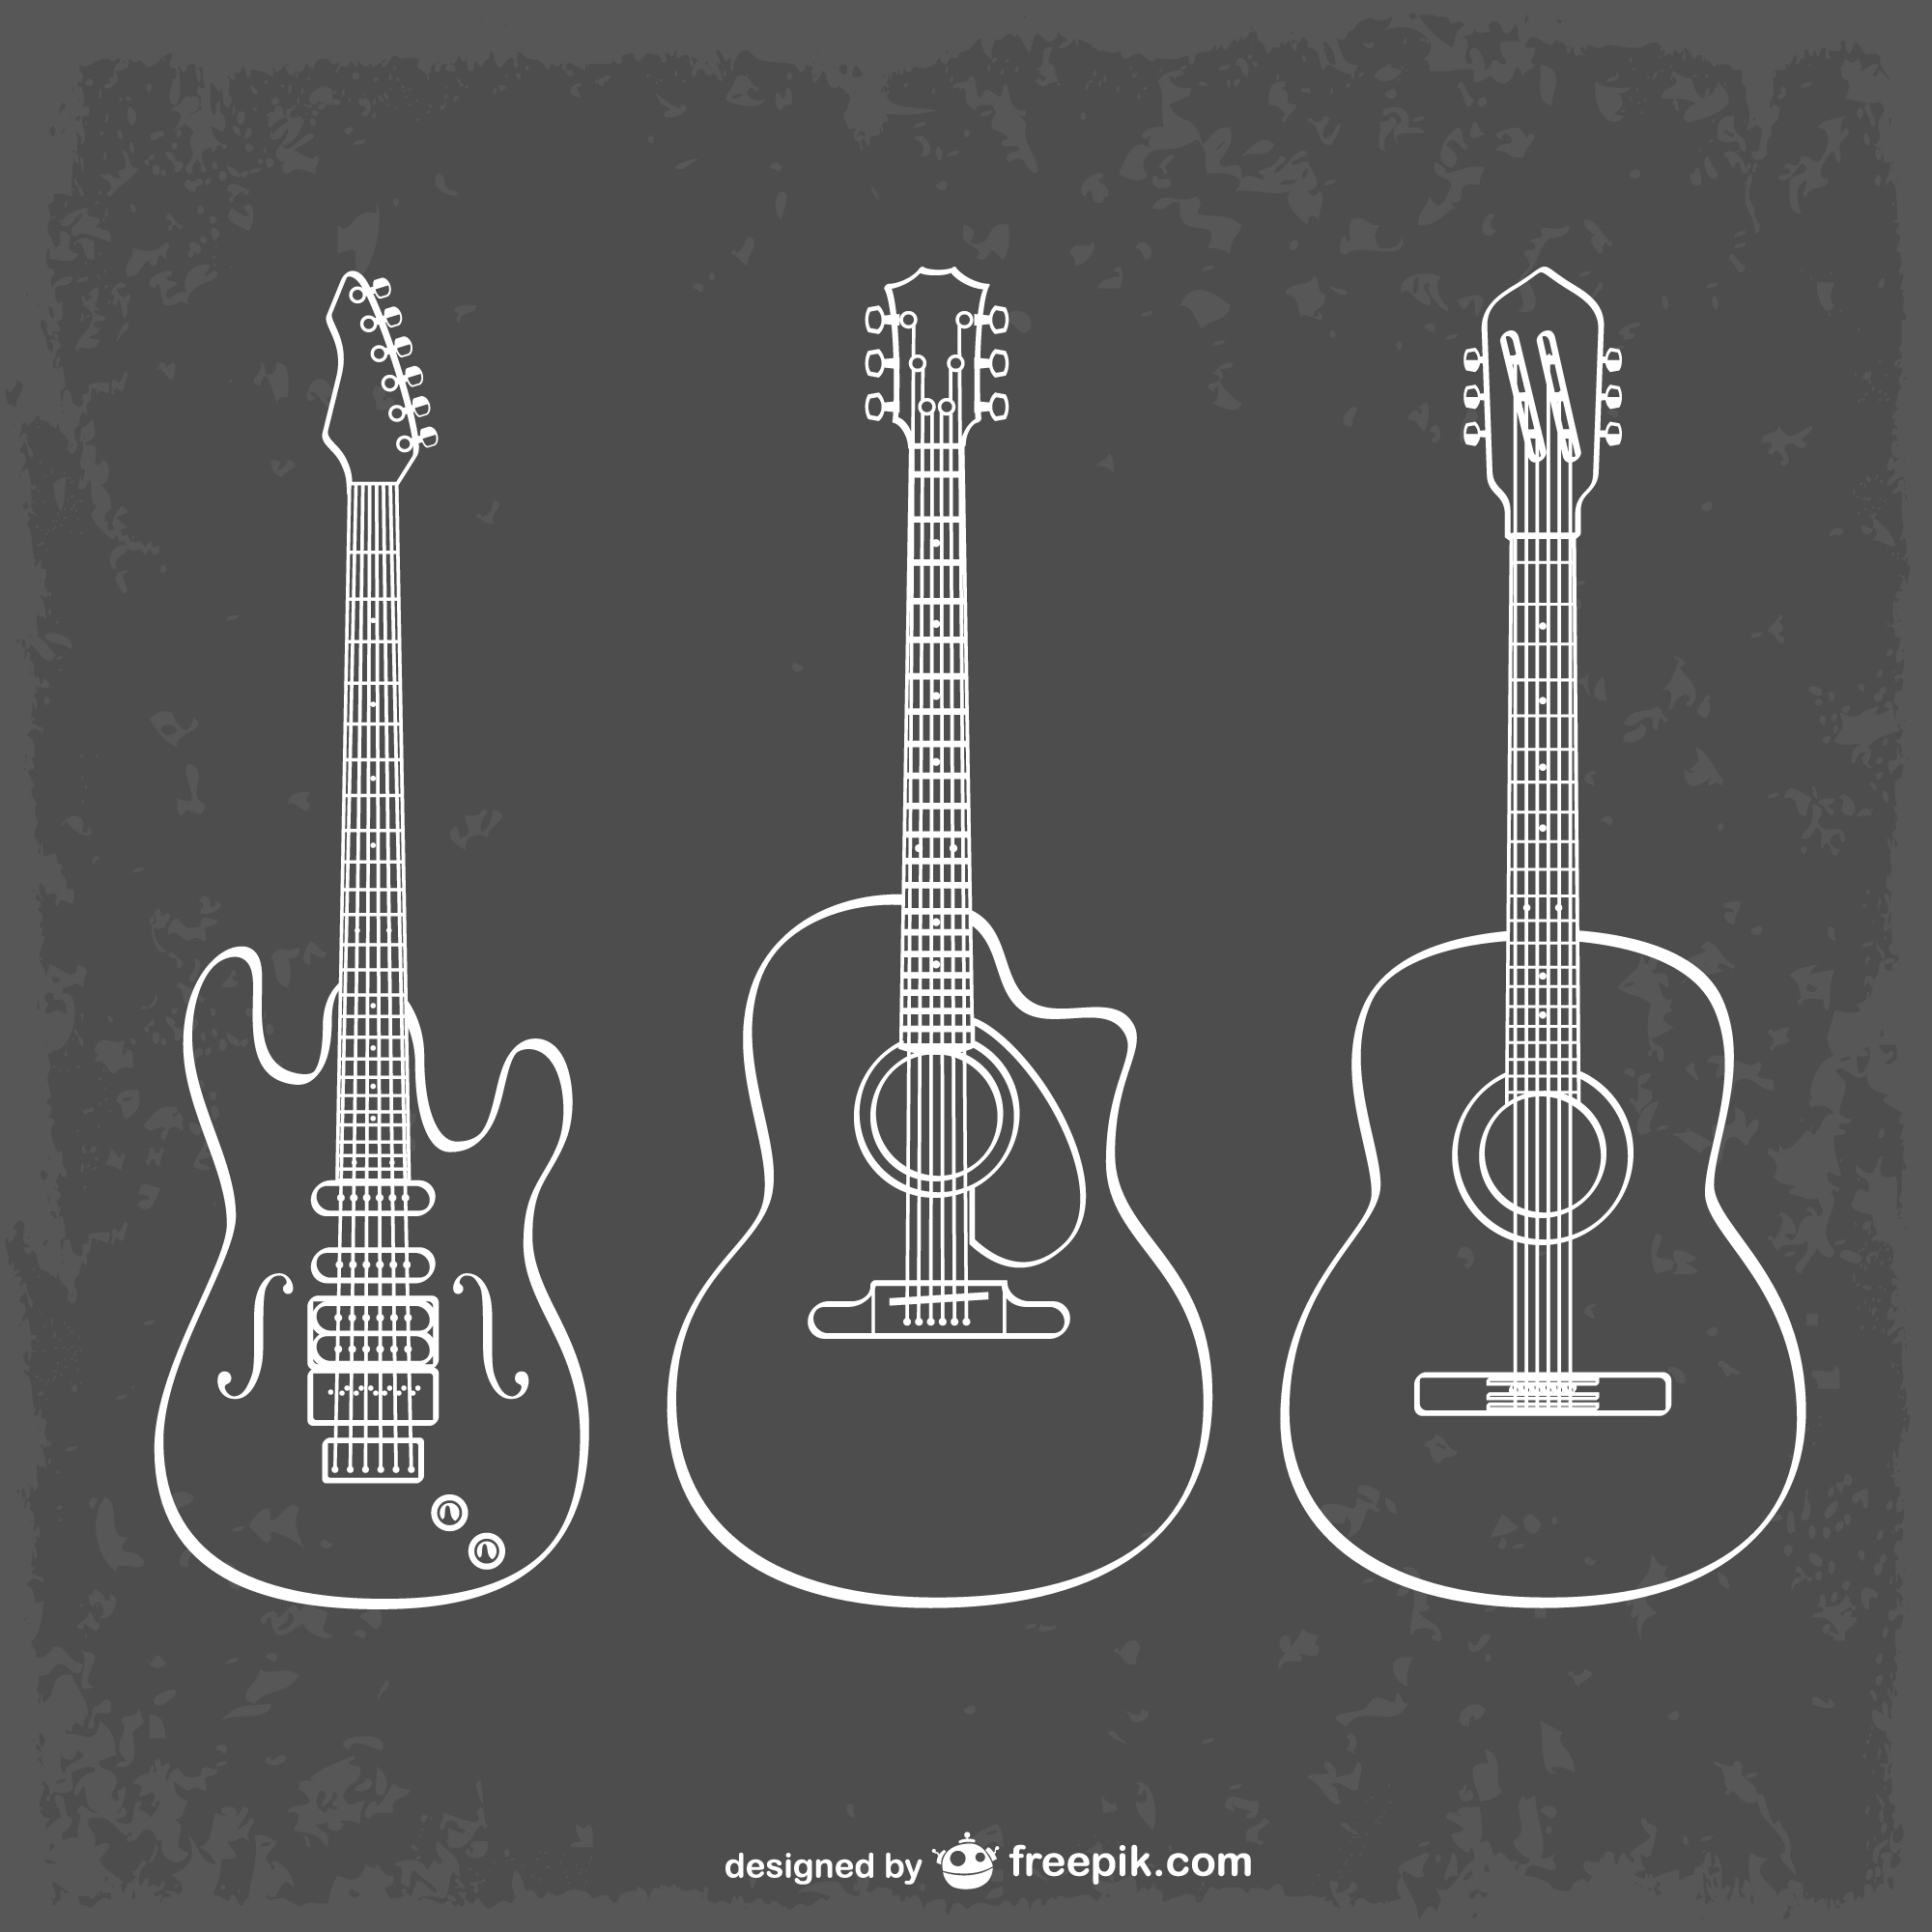 Guitar line art illustration